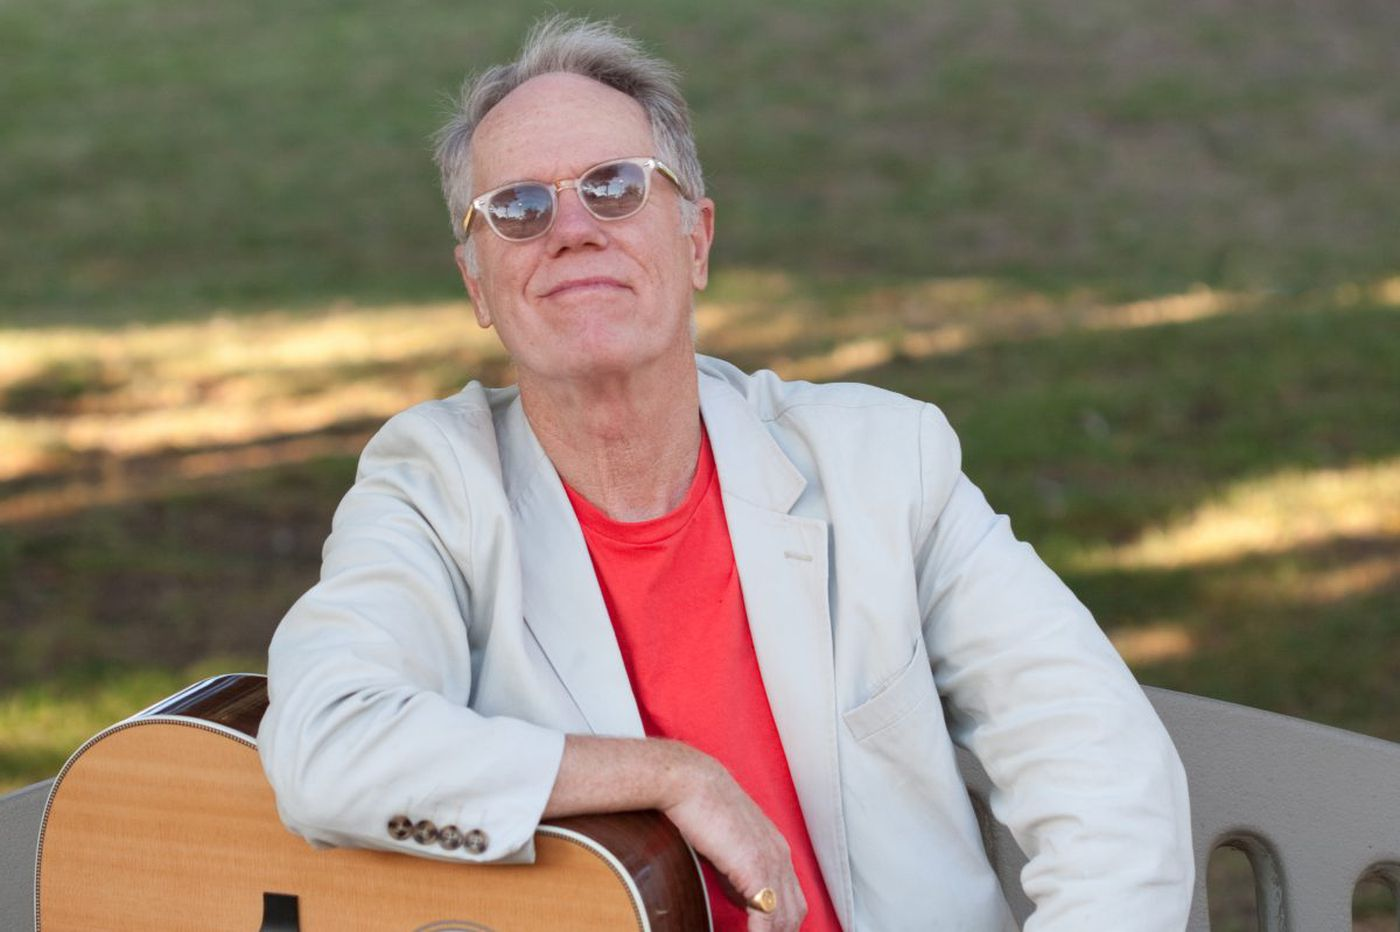 Loudon Wainwright tells all, this time in a book